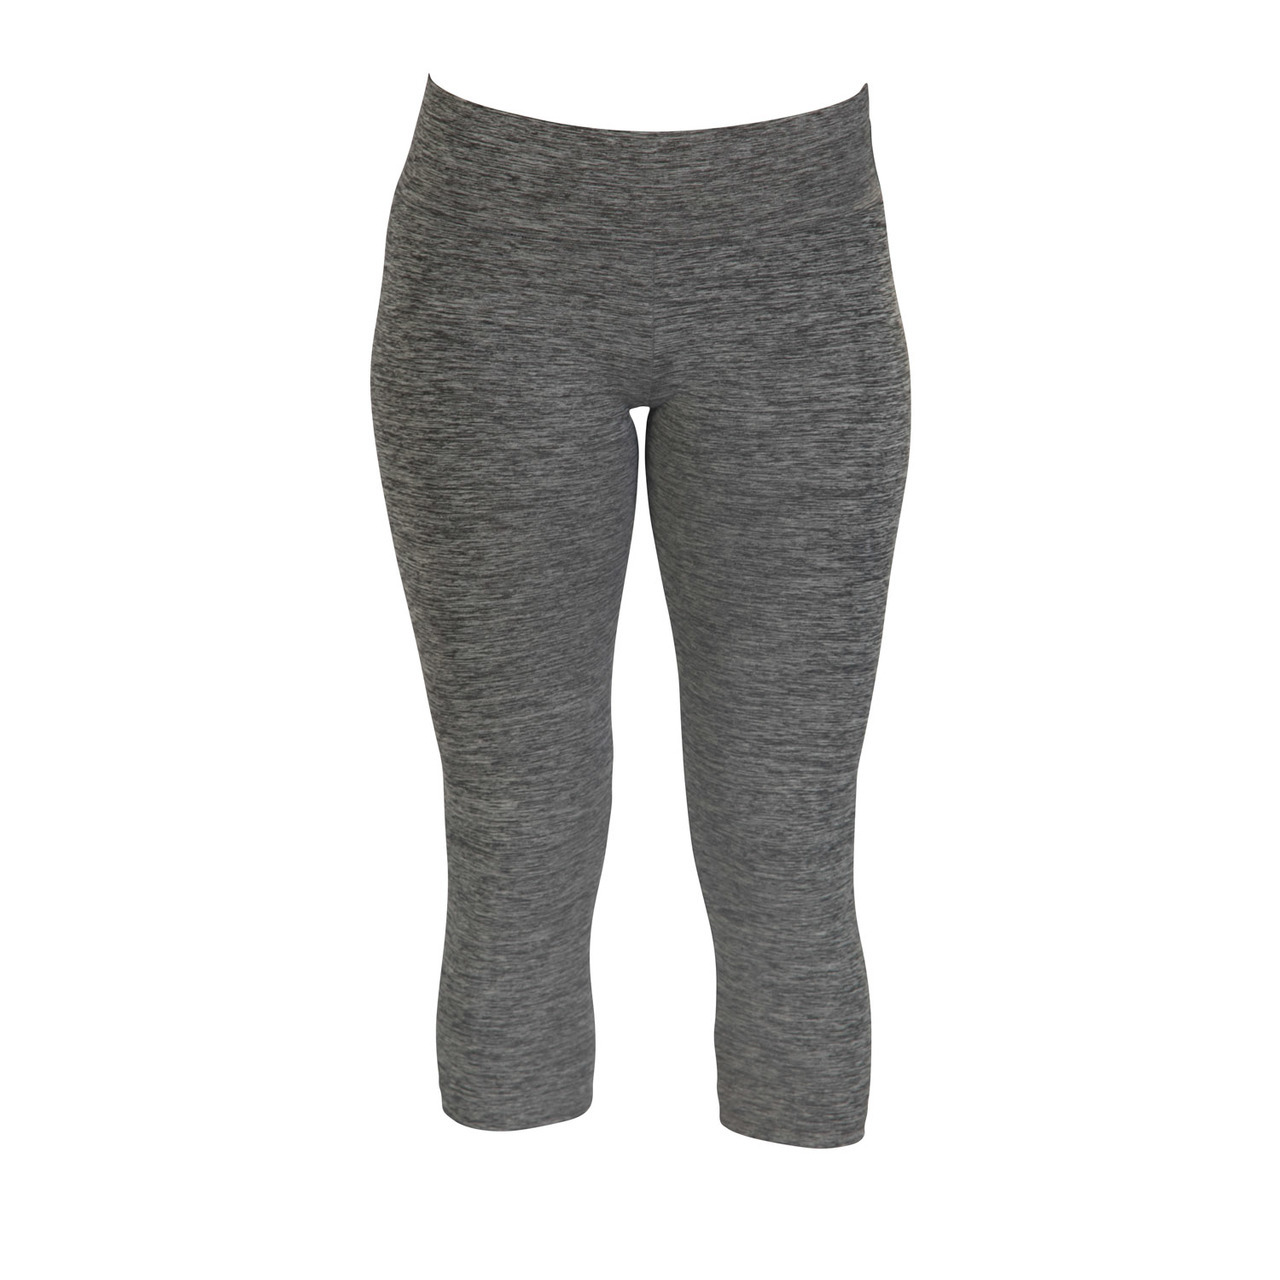 Movin' Capri Leggings - Blended Black